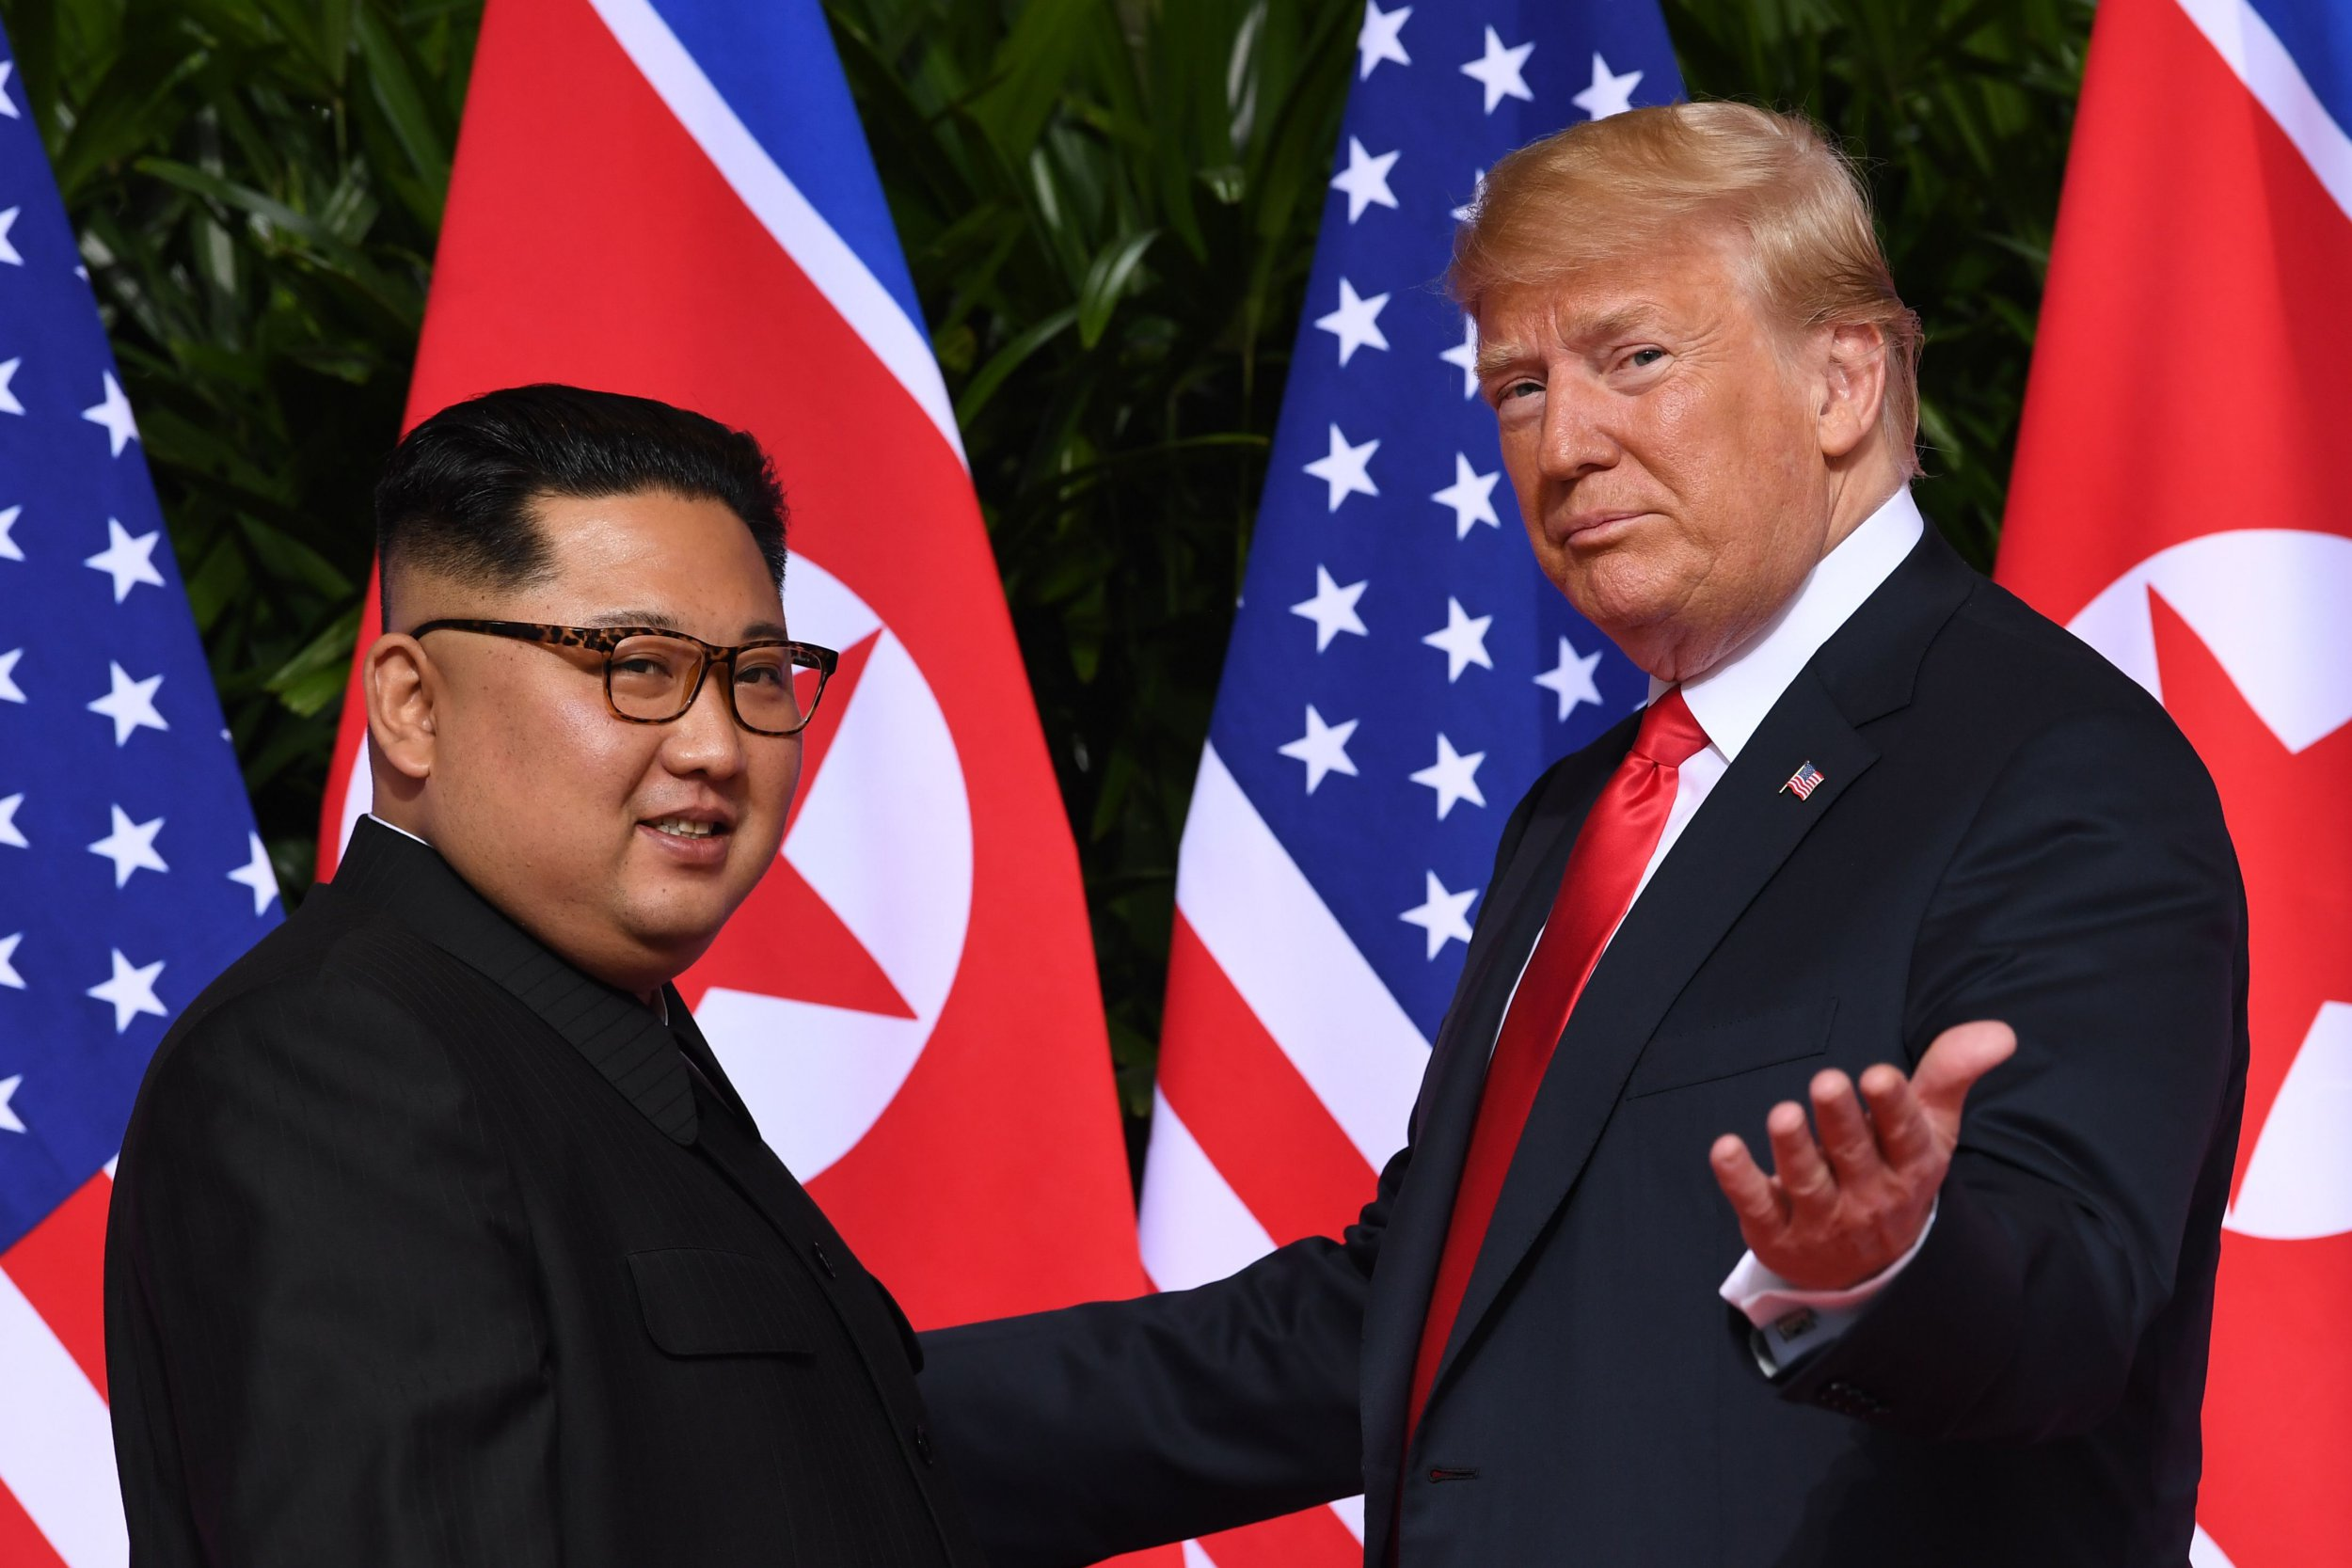 """(FILES) In this file photo taken on June 11, 2018 US President Donald Trump (R) gestures as he meets with North Korea's leader Kim Jong Un (L) at the start of their historic US-North Korea summit, at the Capella Hotel on Sentosa island in Singapore. - US President Donald Trump said on December 1, 2018, he hoped to organize a second summit with North Korean leader Kim Jong Un in early 2019, perhaps as soon as January or February. Trump told reporters traveling home to Washington with him aboard Air Force One from Argentina that """"three sites"""" were in consideration for the meeting, a follow-up to their historic summit in Singapore in June. (Photo by SAUL LOEB / AFP)SAUL LOEB/AFP/Getty Images"""